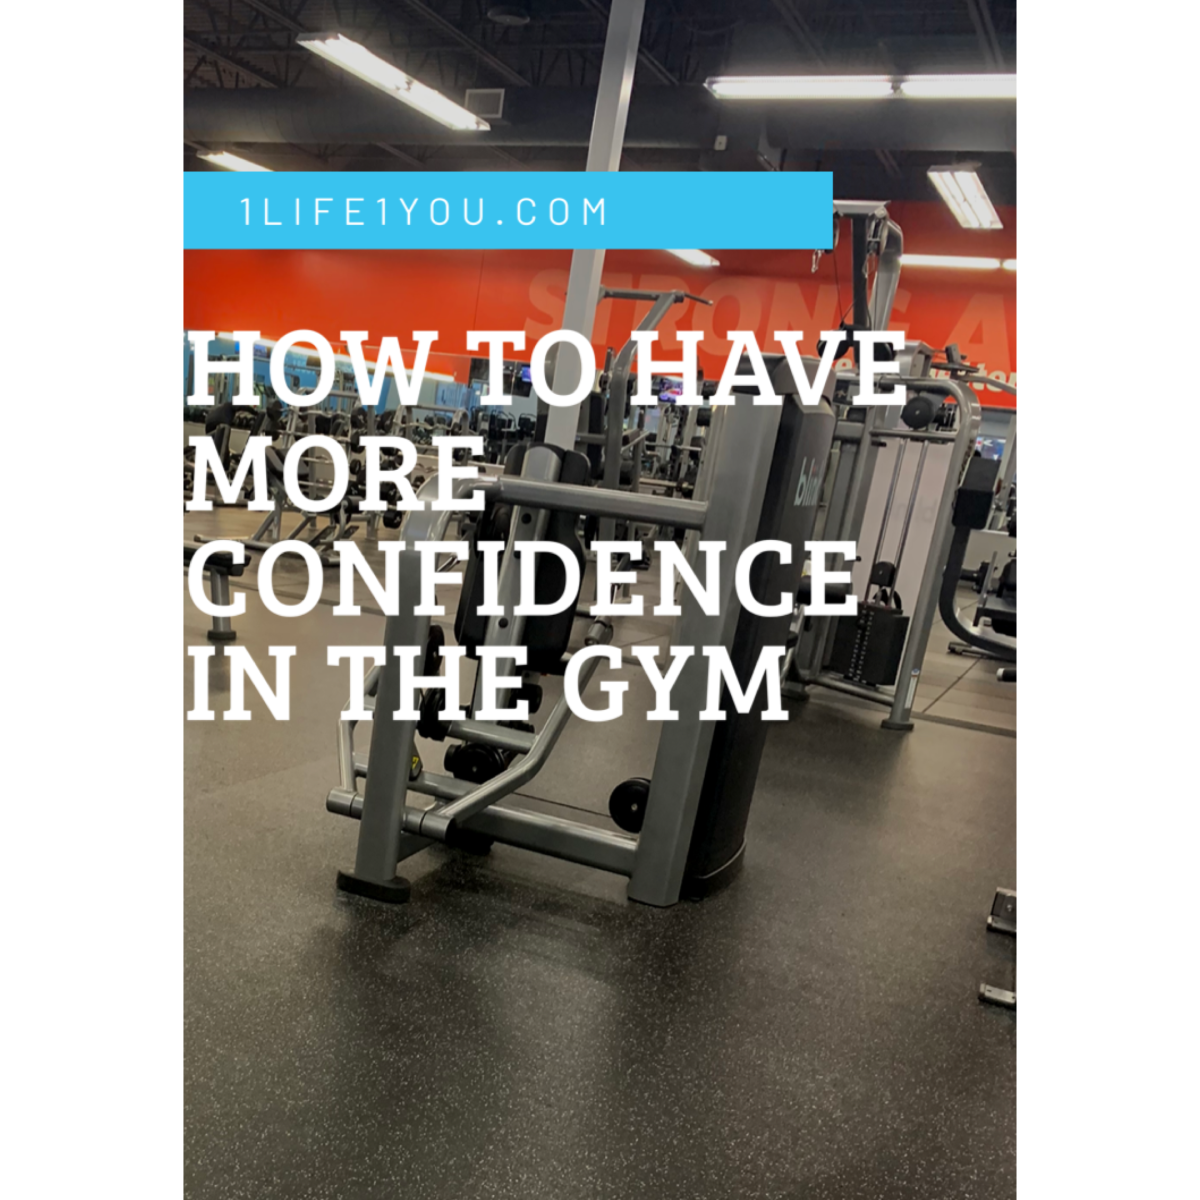 Have More Confidence In TheGym